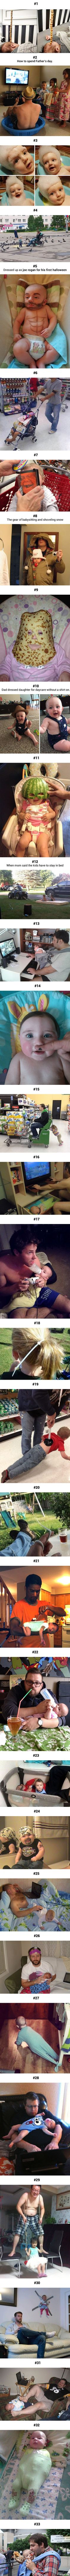 33 Dads Show Off Secret Perks Of Parenting